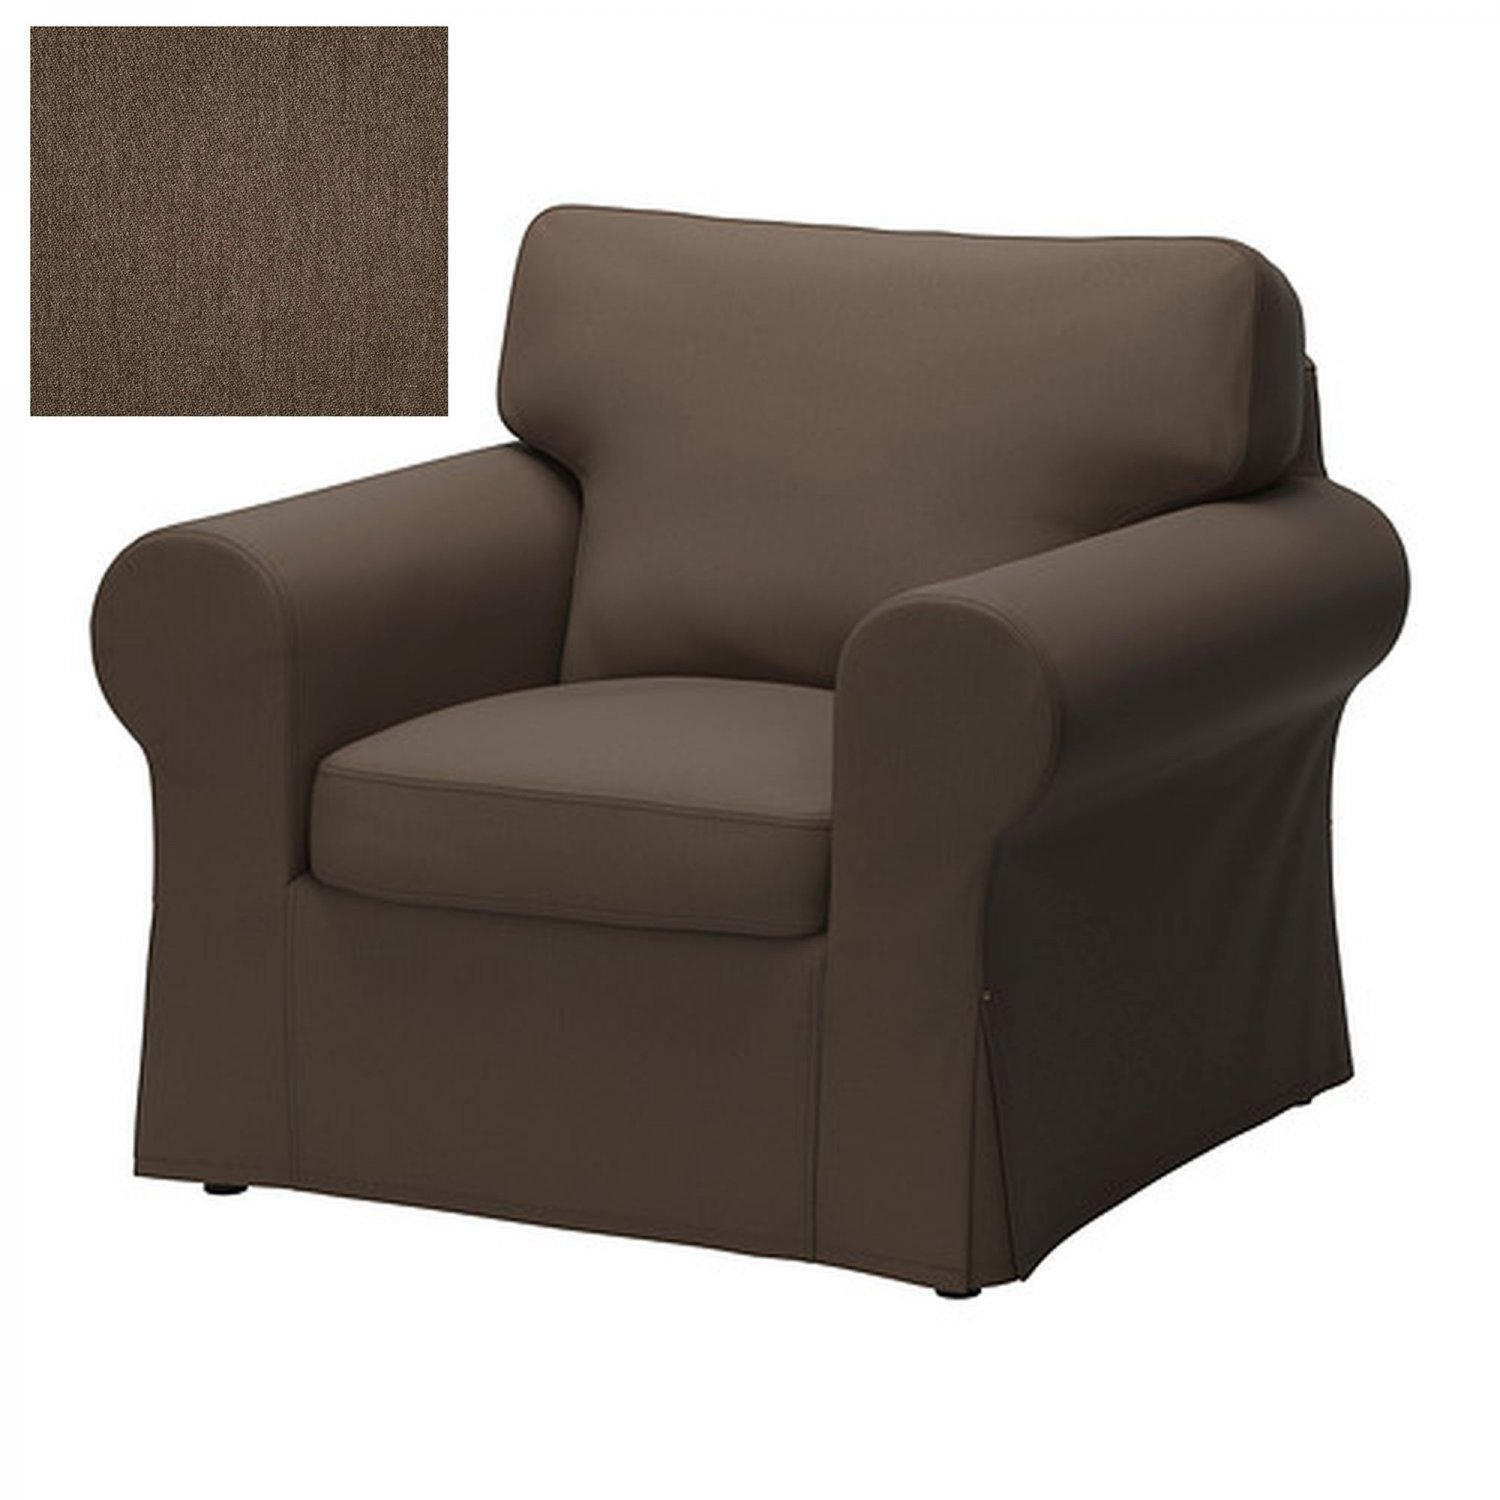 ikea ektorp armchair cover chair slipcover jonsboda brown. Black Bedroom Furniture Sets. Home Design Ideas